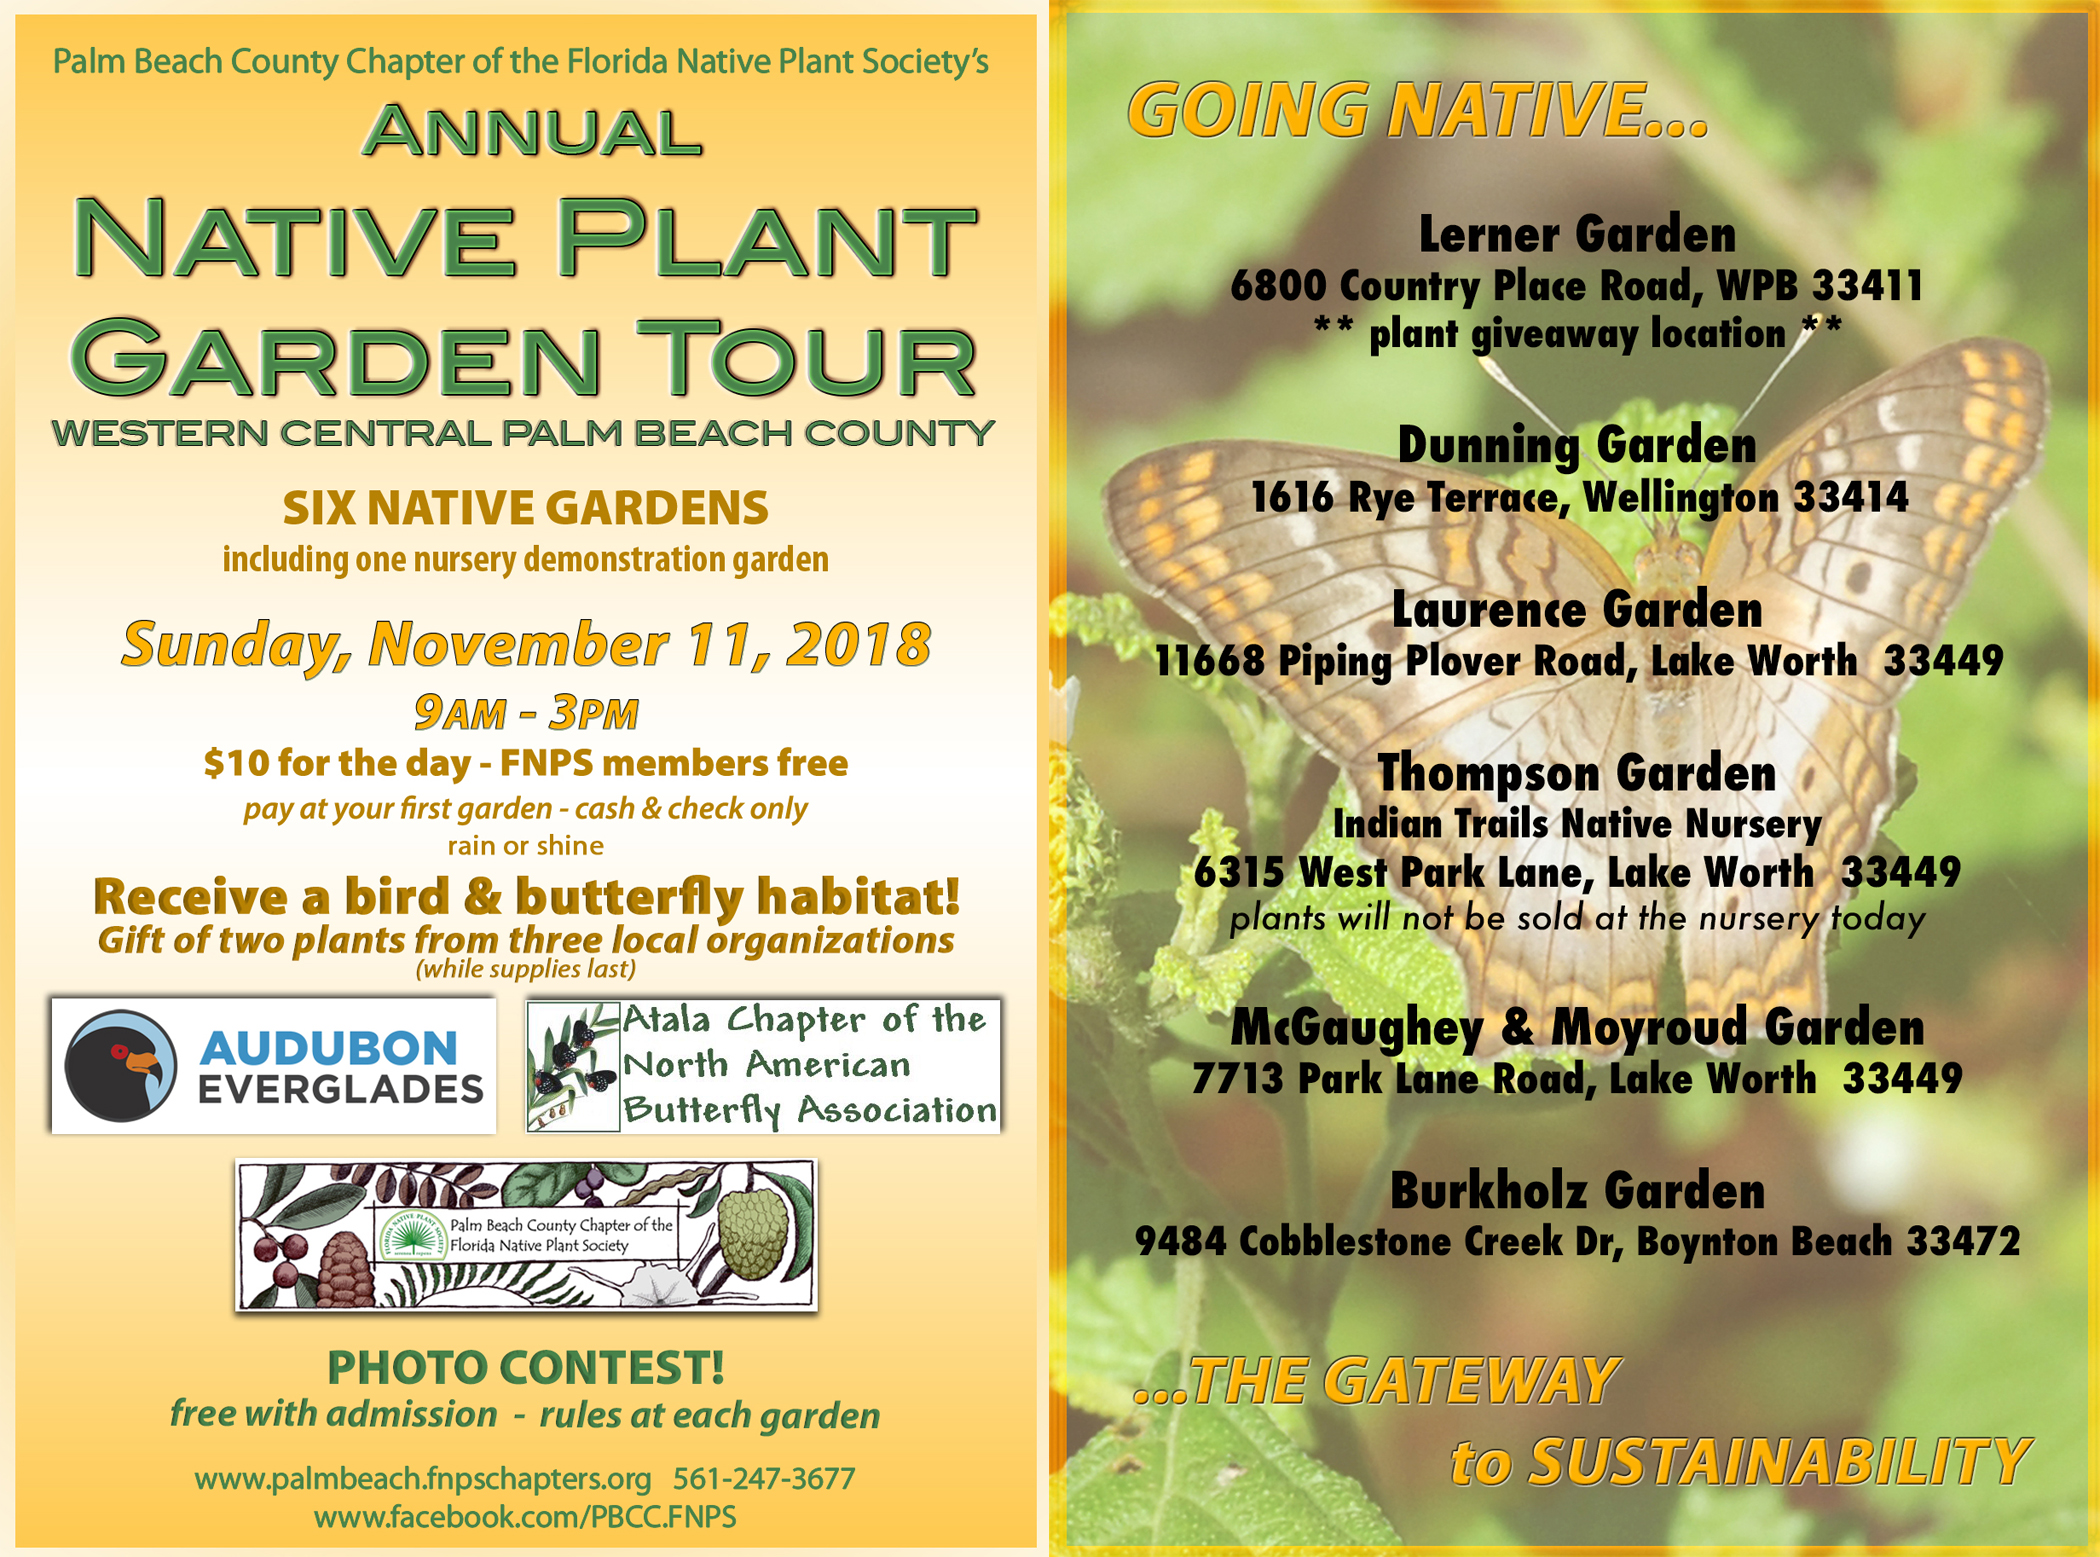 2018 Native Plant Garden Tour and Photo Contest - Palm Beach